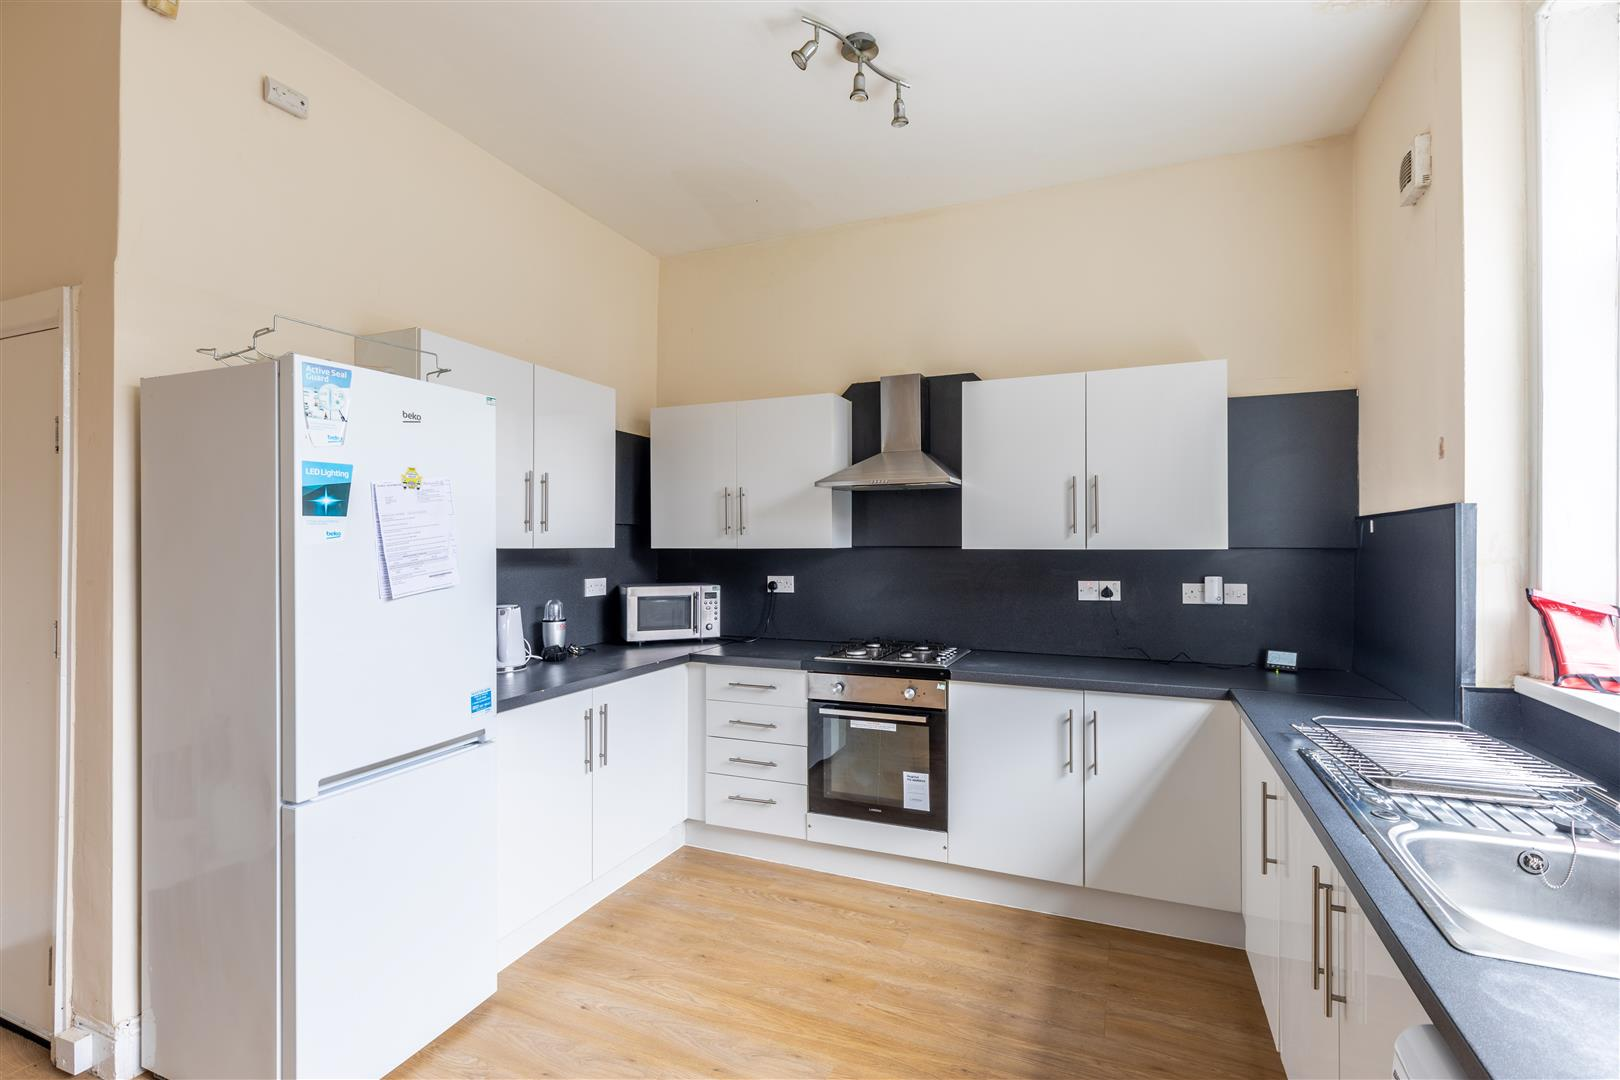 5 bed terraced house to rent in Newcastle Upon Tyne, NE6 5BT 6